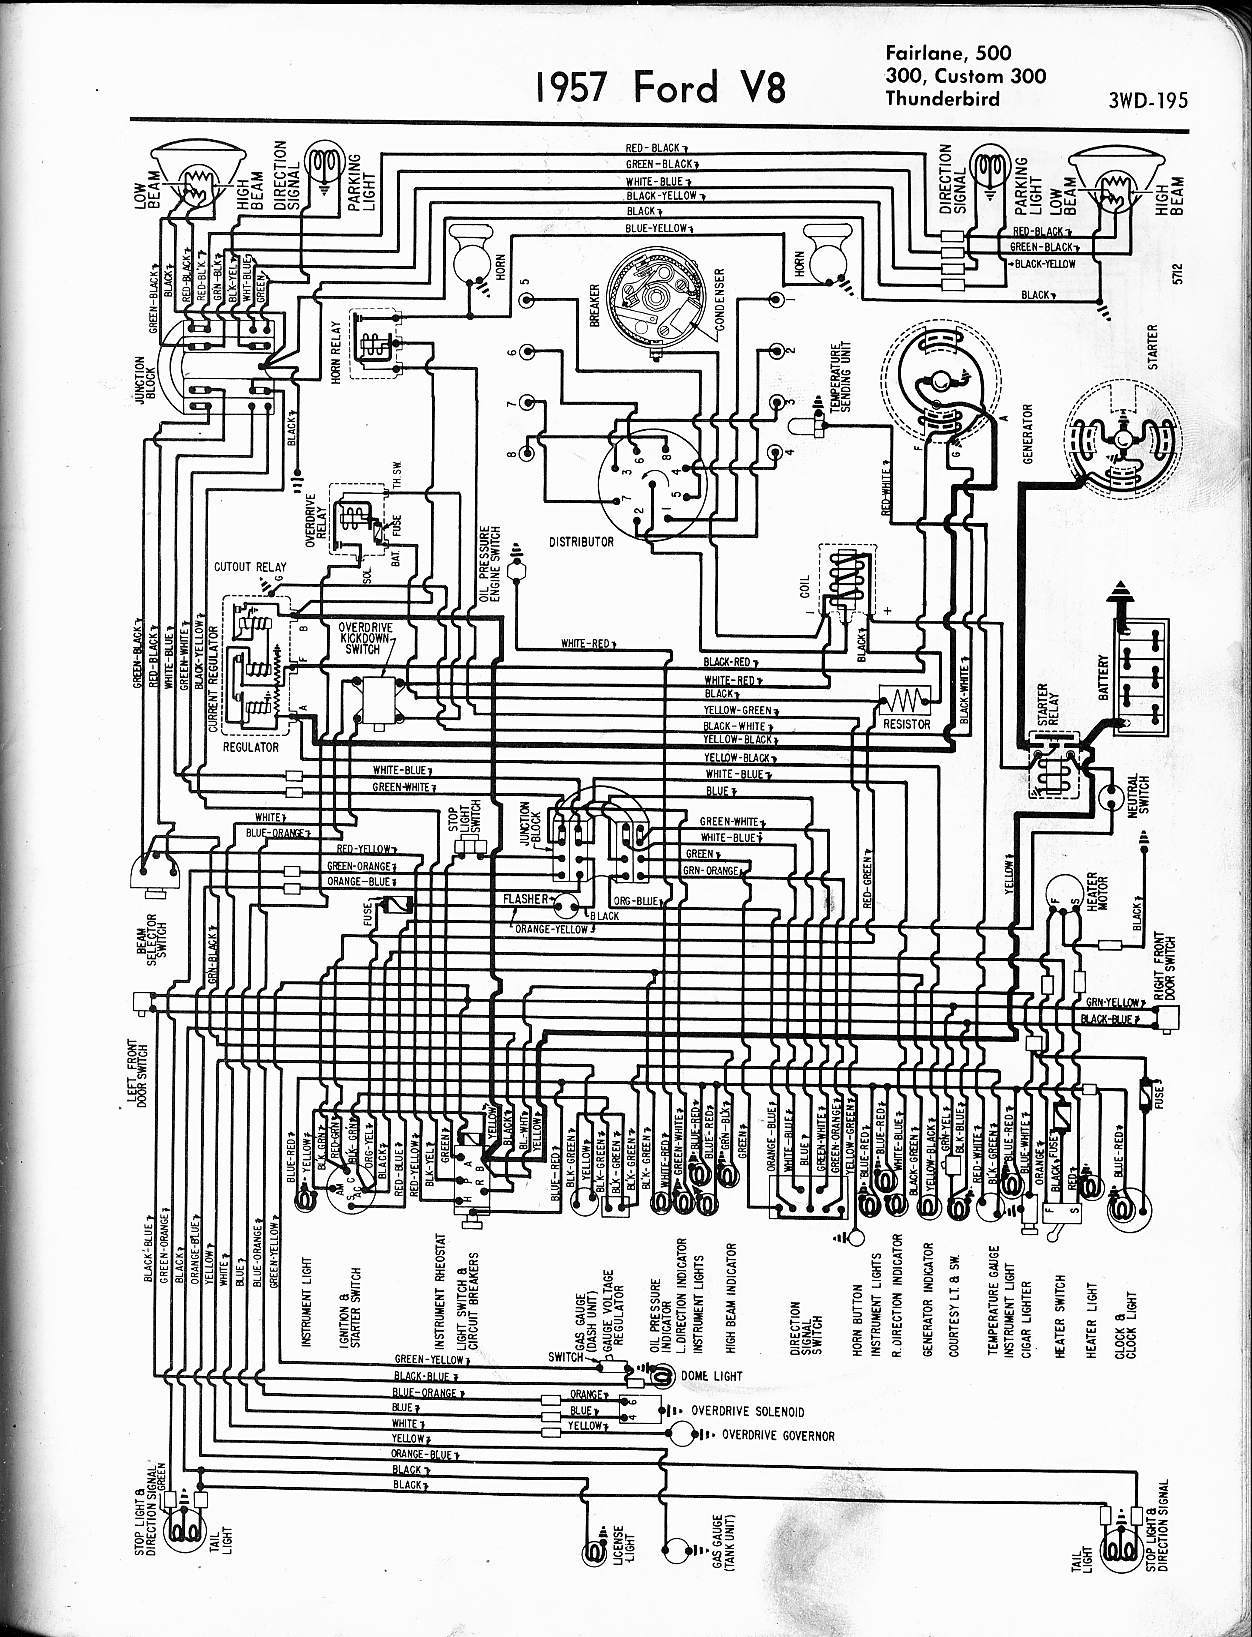 F Wiring Diagram furthermore S L further Curp O Ford Ranch Wagon Front besides C E A furthermore S le. on 1955 ford fairlane wiring diagram